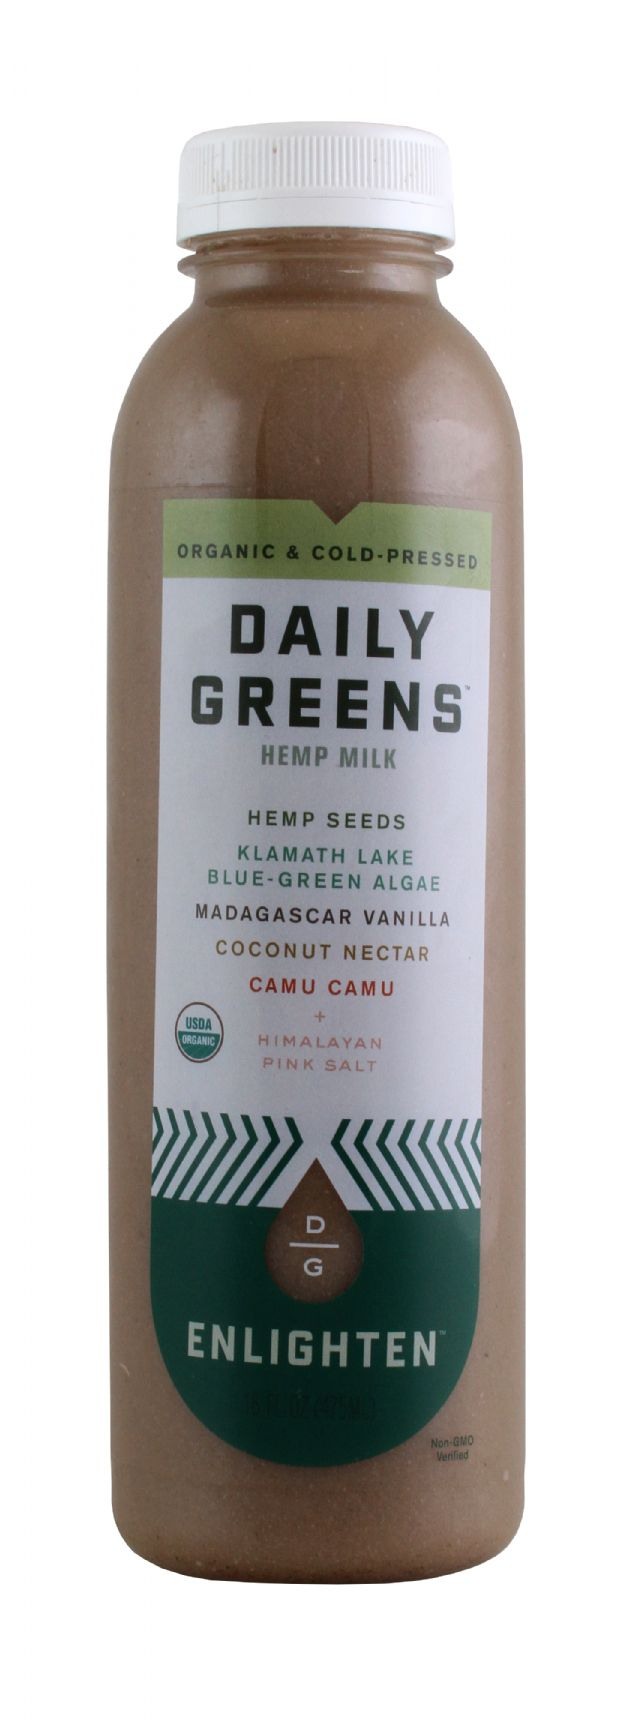 Daily Greens: DailyGreens Enlighten Front